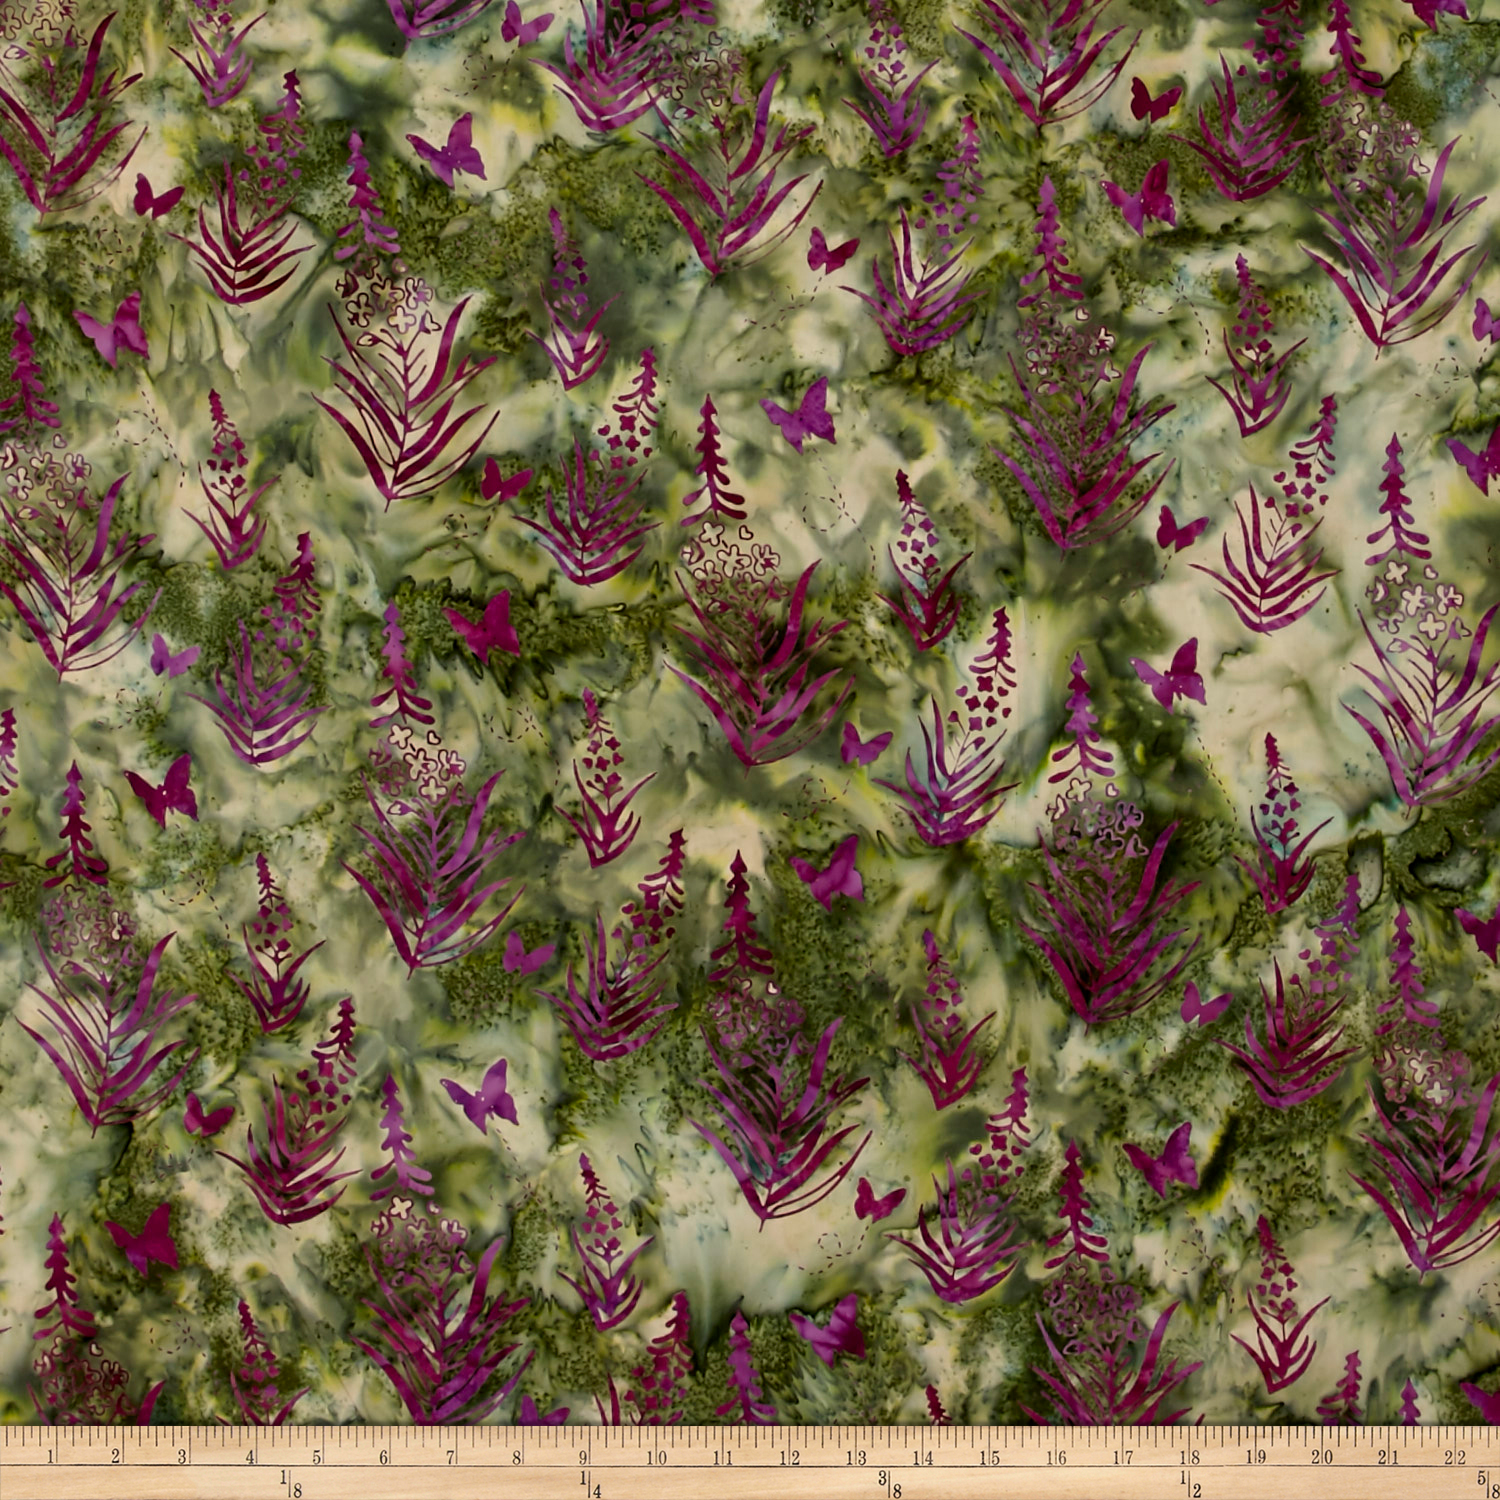 Bali Batiks Handpaint Fireweed Forest Fabric by Hoffman of California in USA